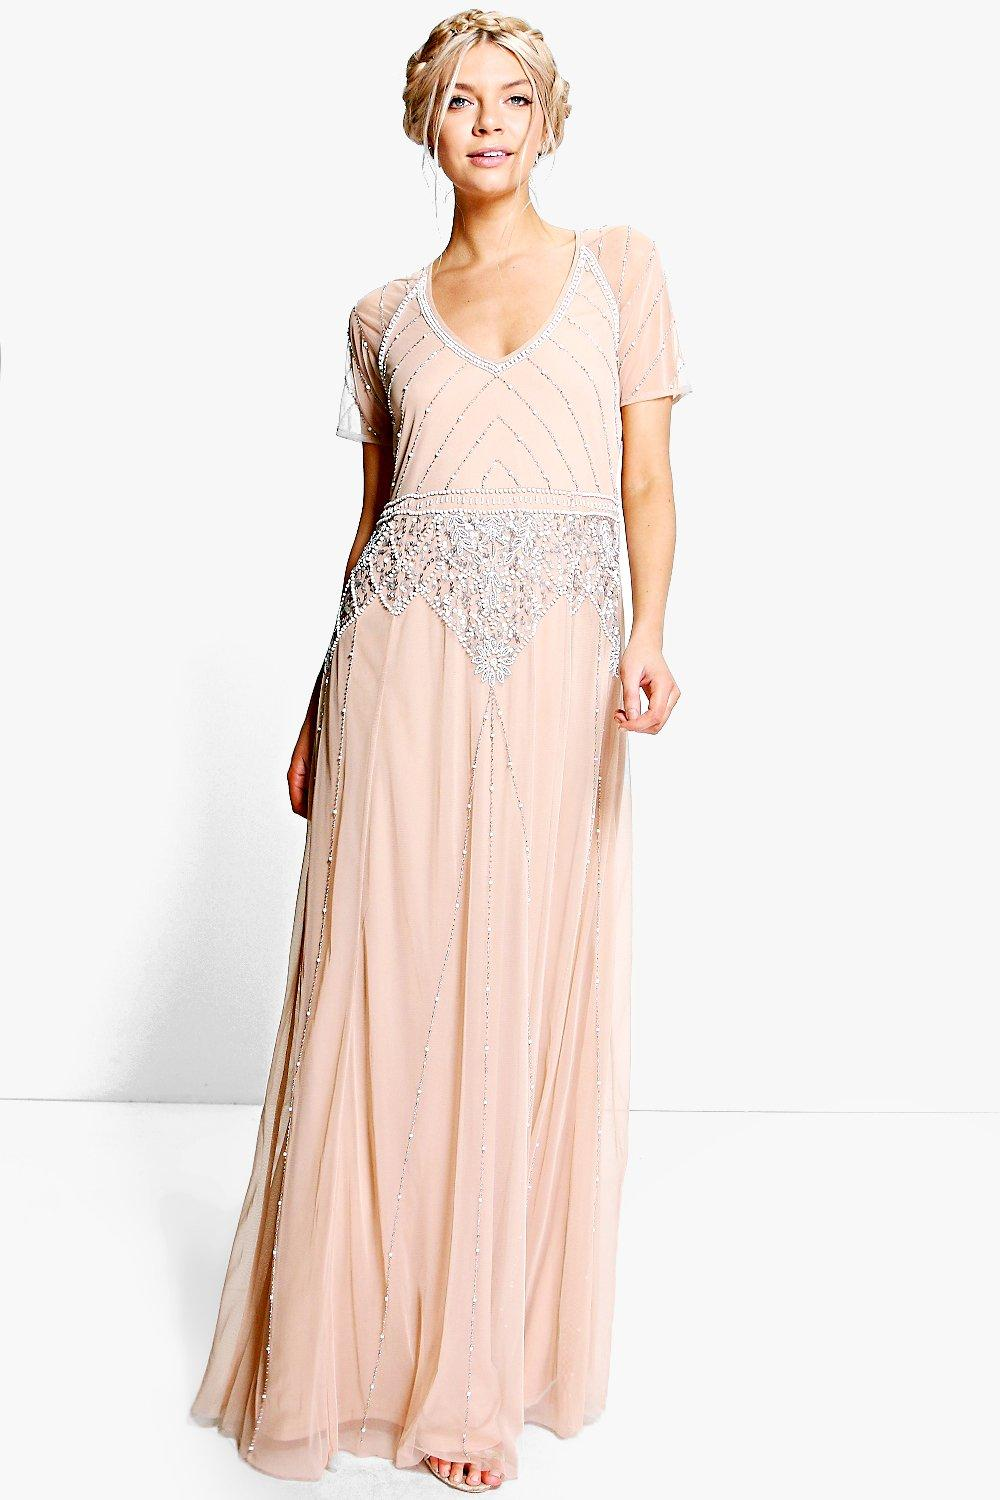 Vintage Evening Dresses and Formal Evening Gowns Womens Boutique Beaded Cap Sleeve Maxi Bridesmaid Dress - Beige - 10 $28.00 AT vintagedancer.com